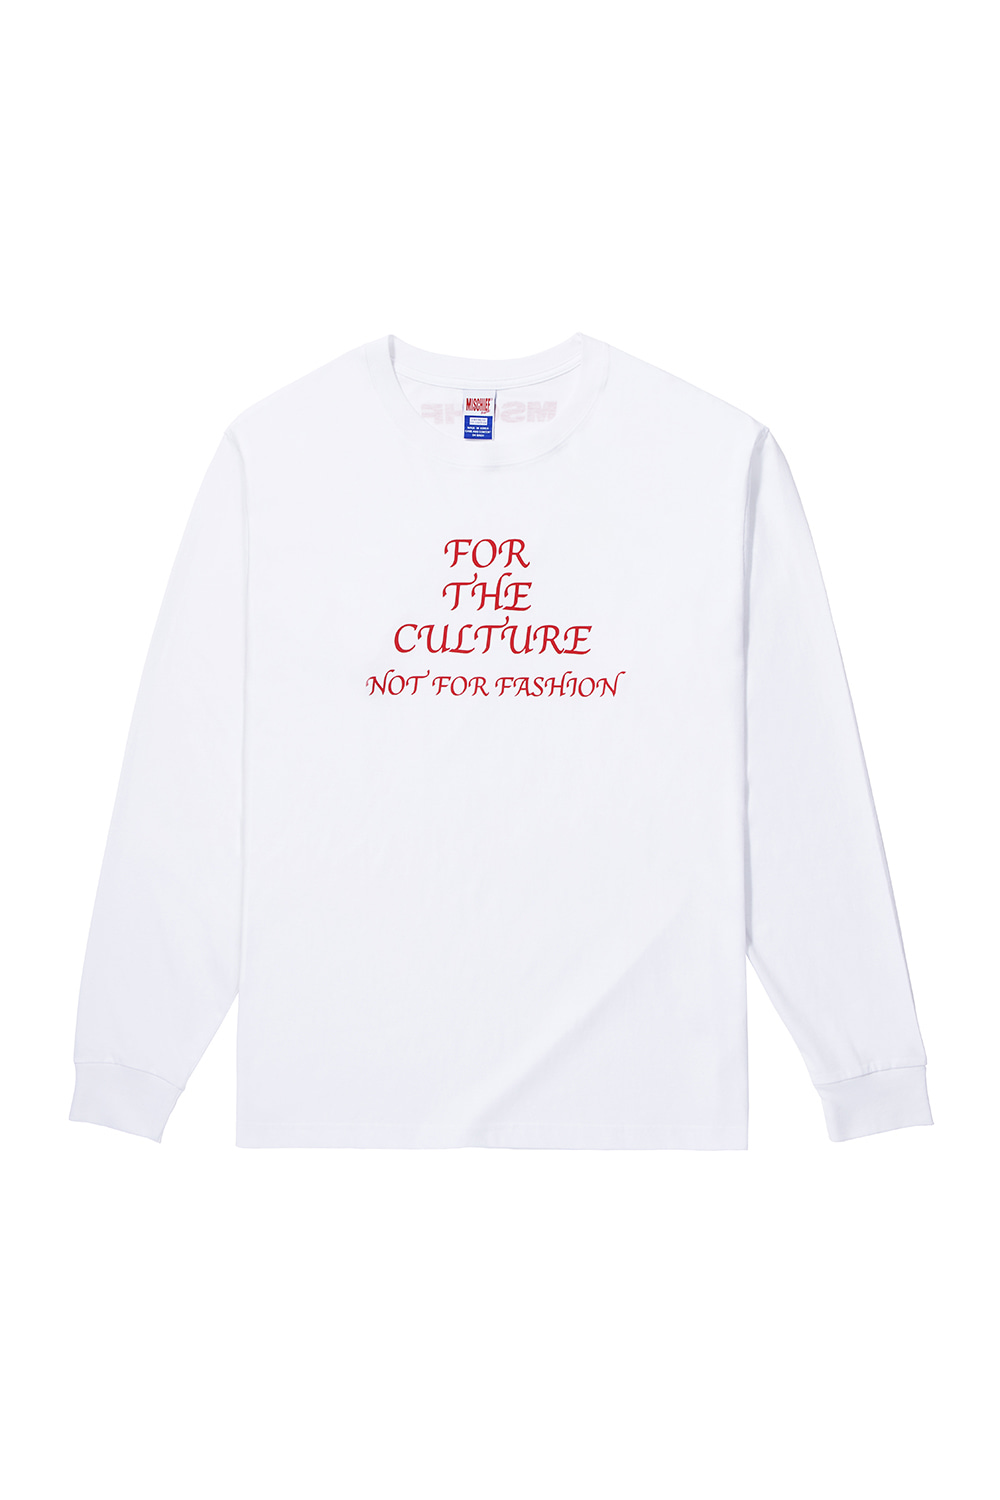 FOR THE CULTURE LONG SLEEVE_white